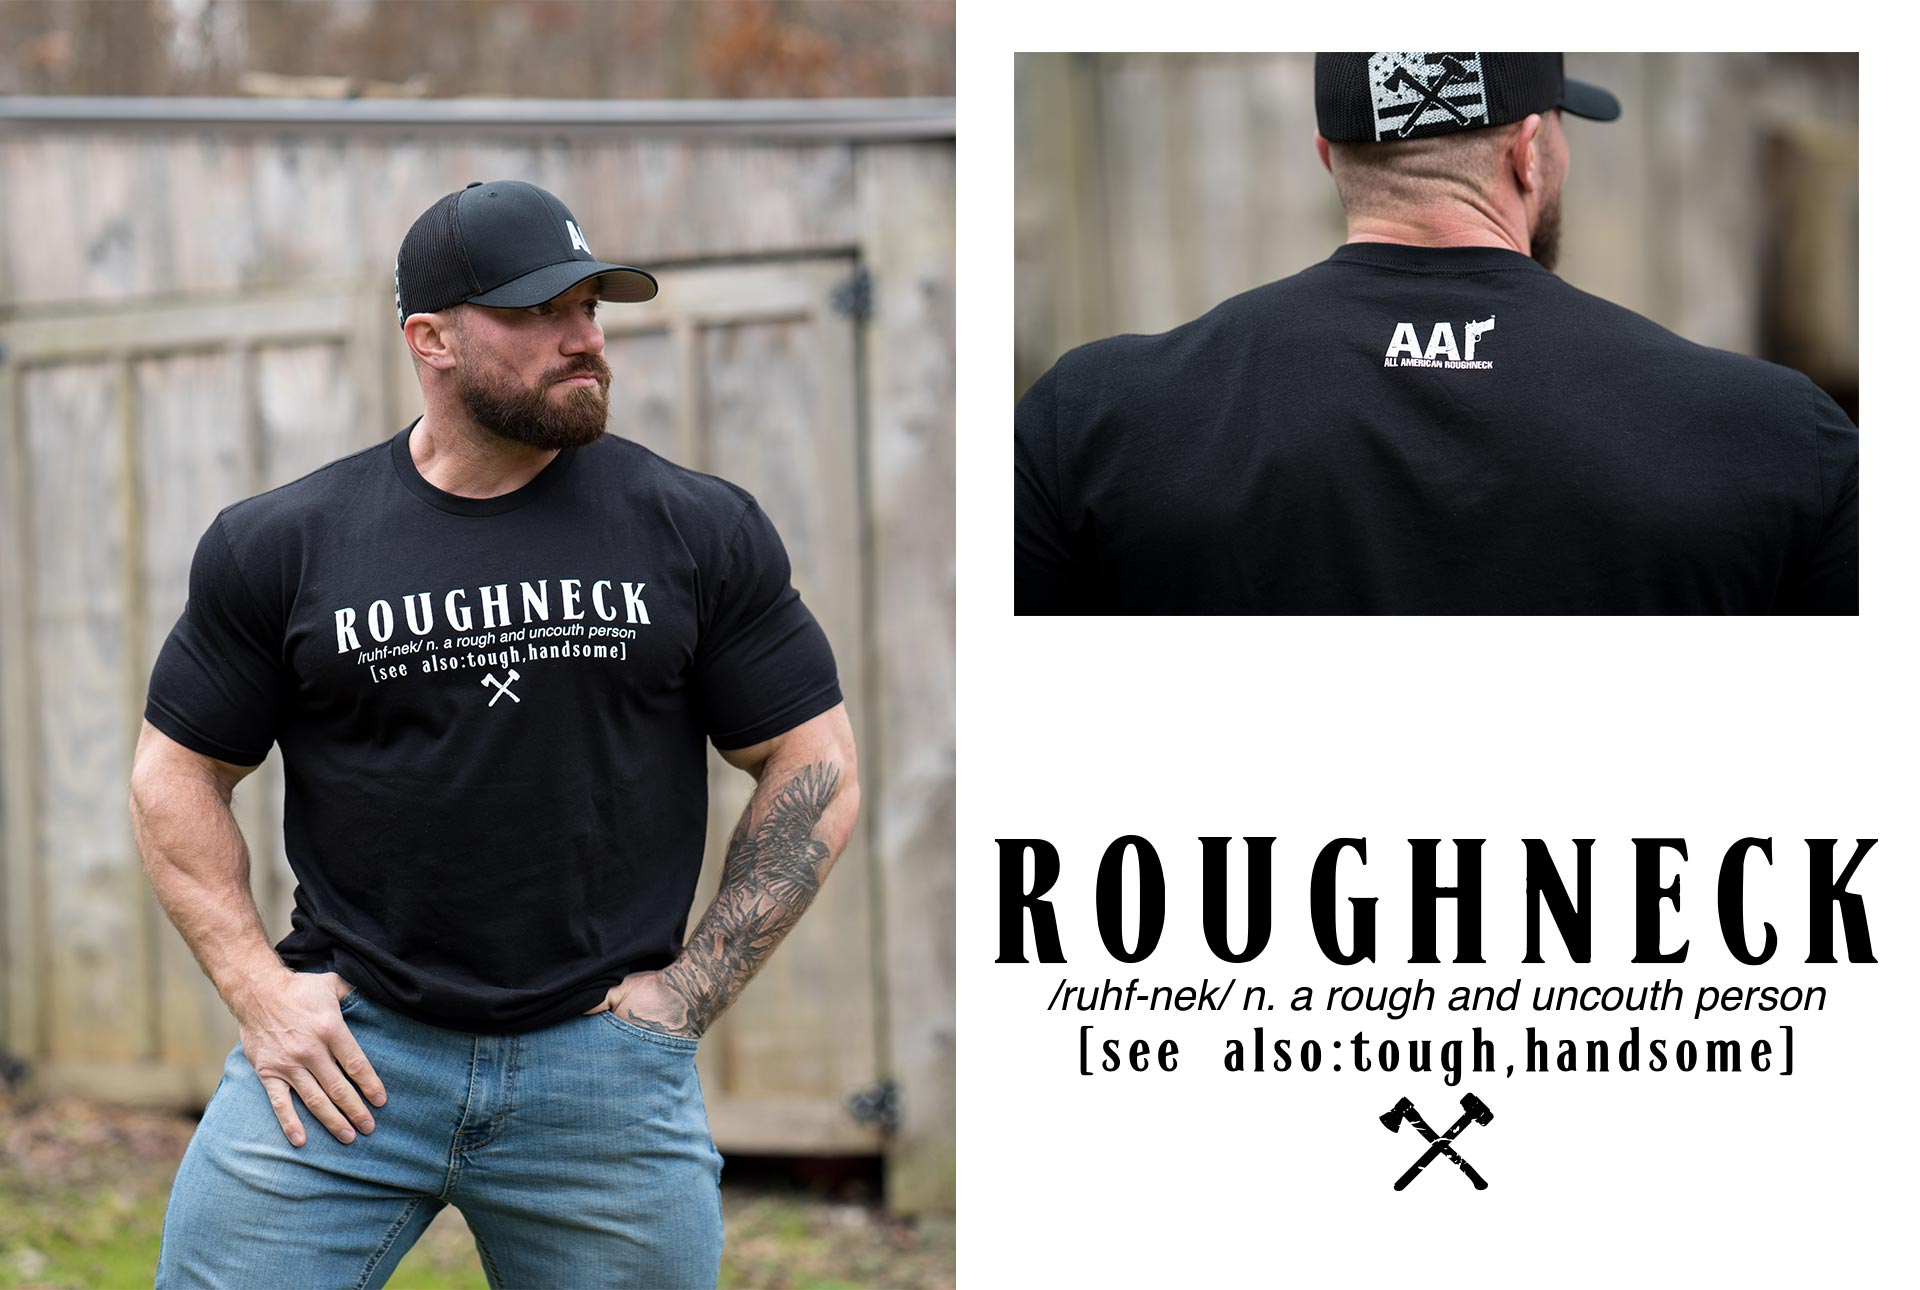 Roughneck Definition Tee